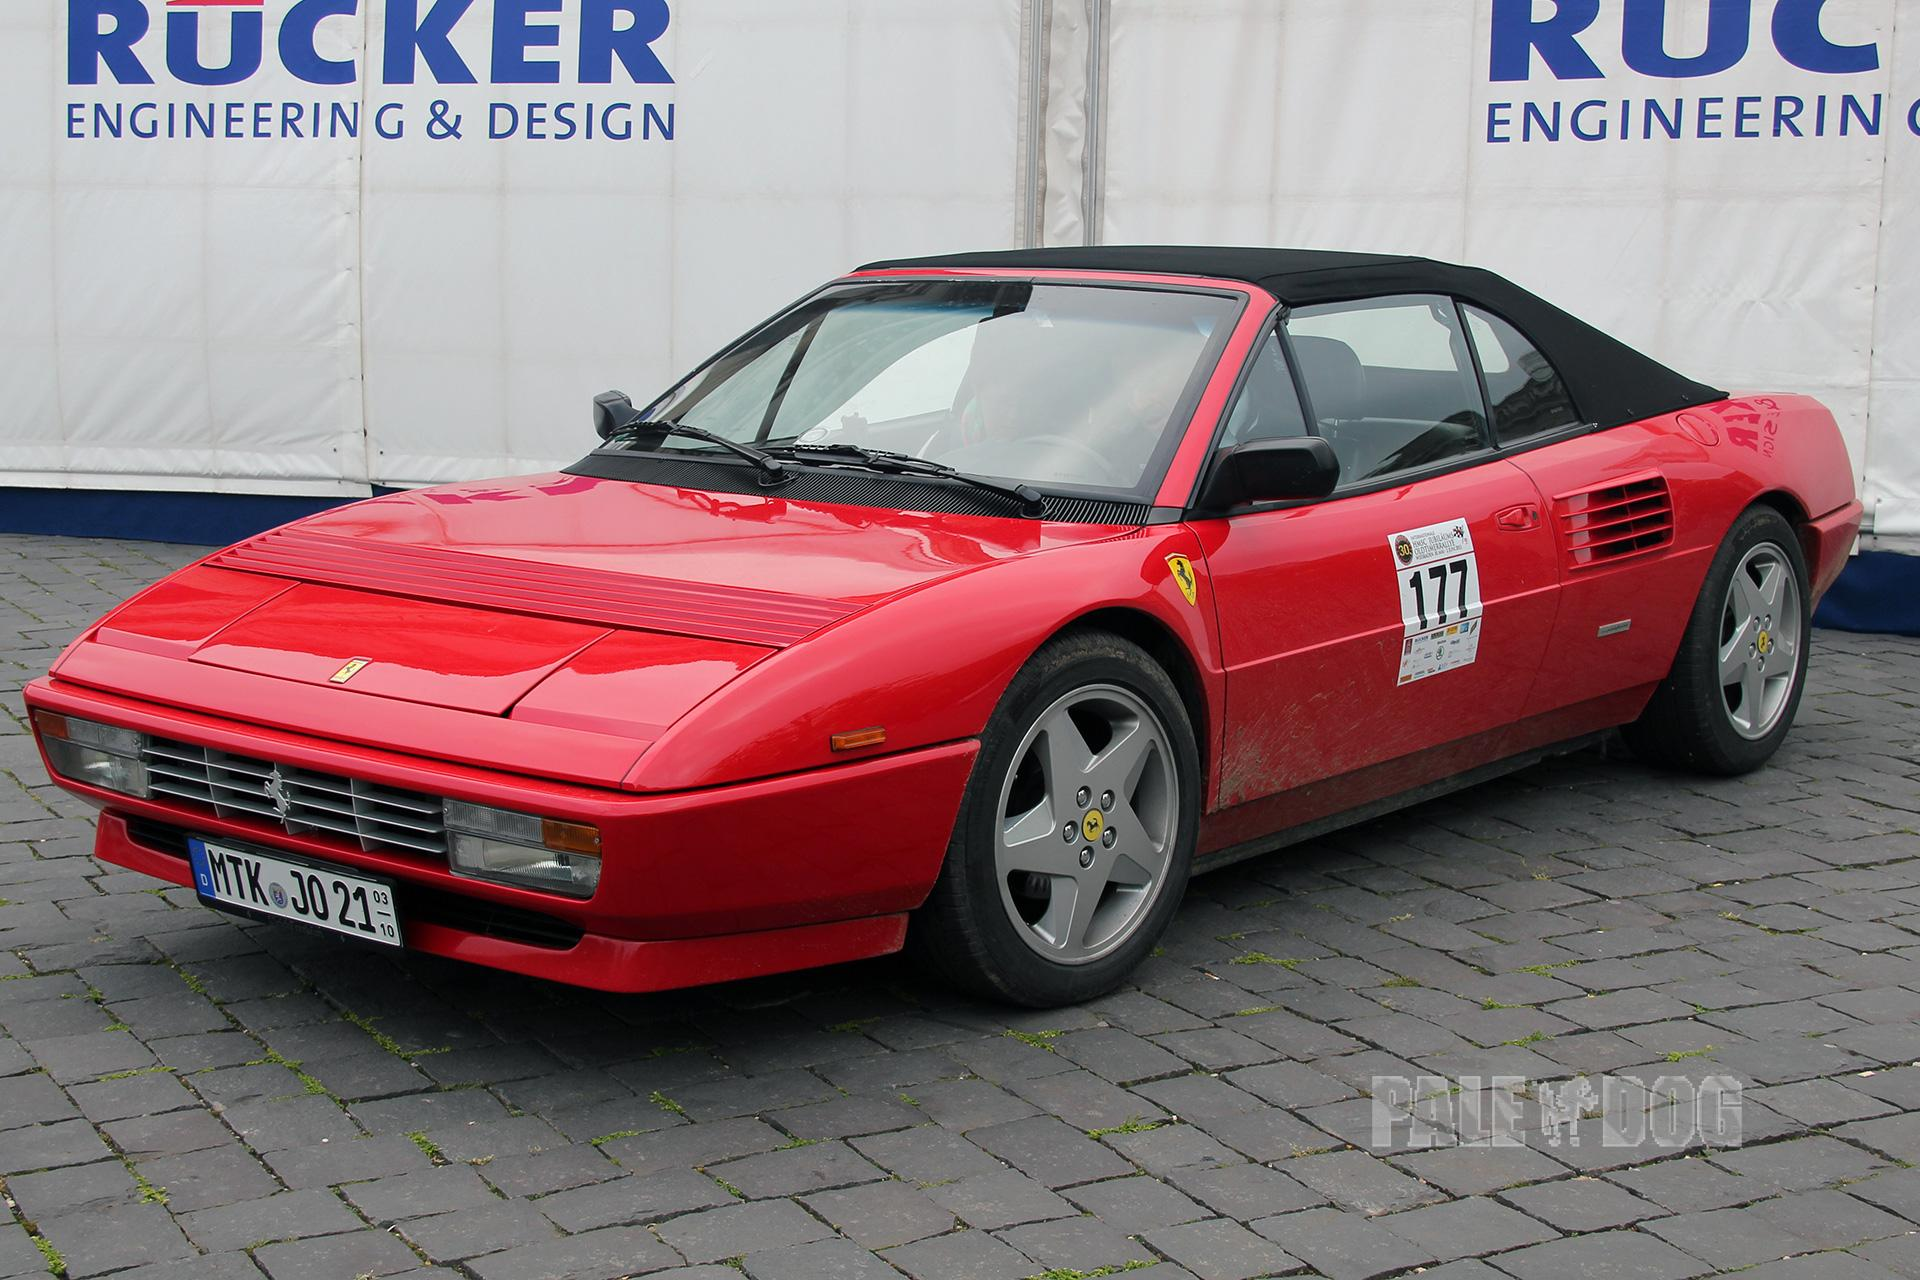 1991 ferrari mondial t cabriolet front view 1990s paledog photo collection. Black Bedroom Furniture Sets. Home Design Ideas